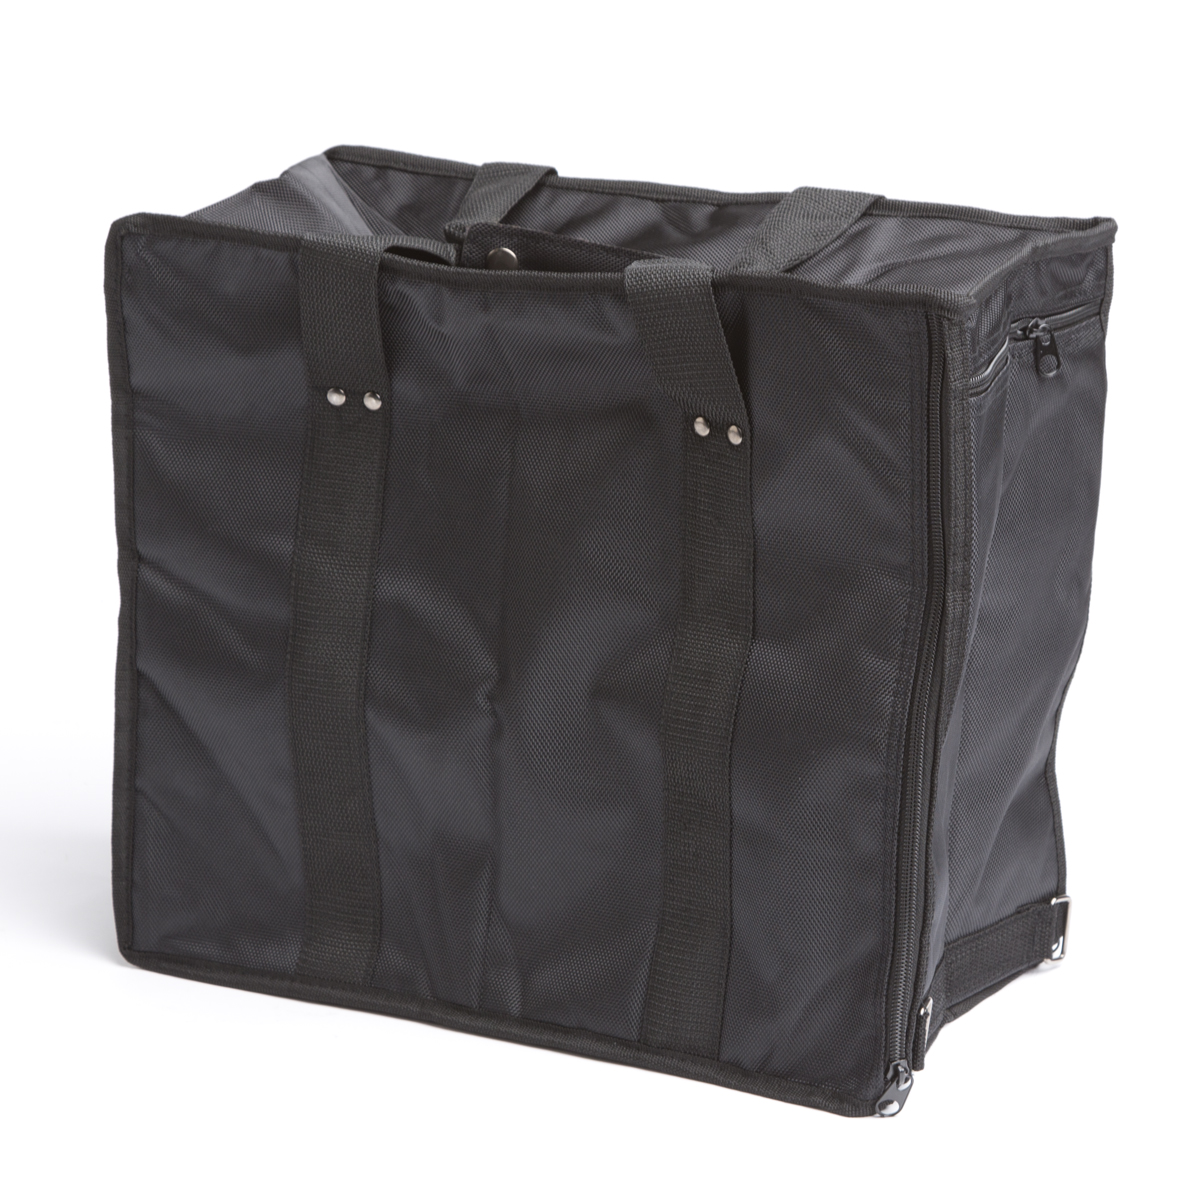 SOFT CARRY CASE-HOLDS 12 1in TRAYS